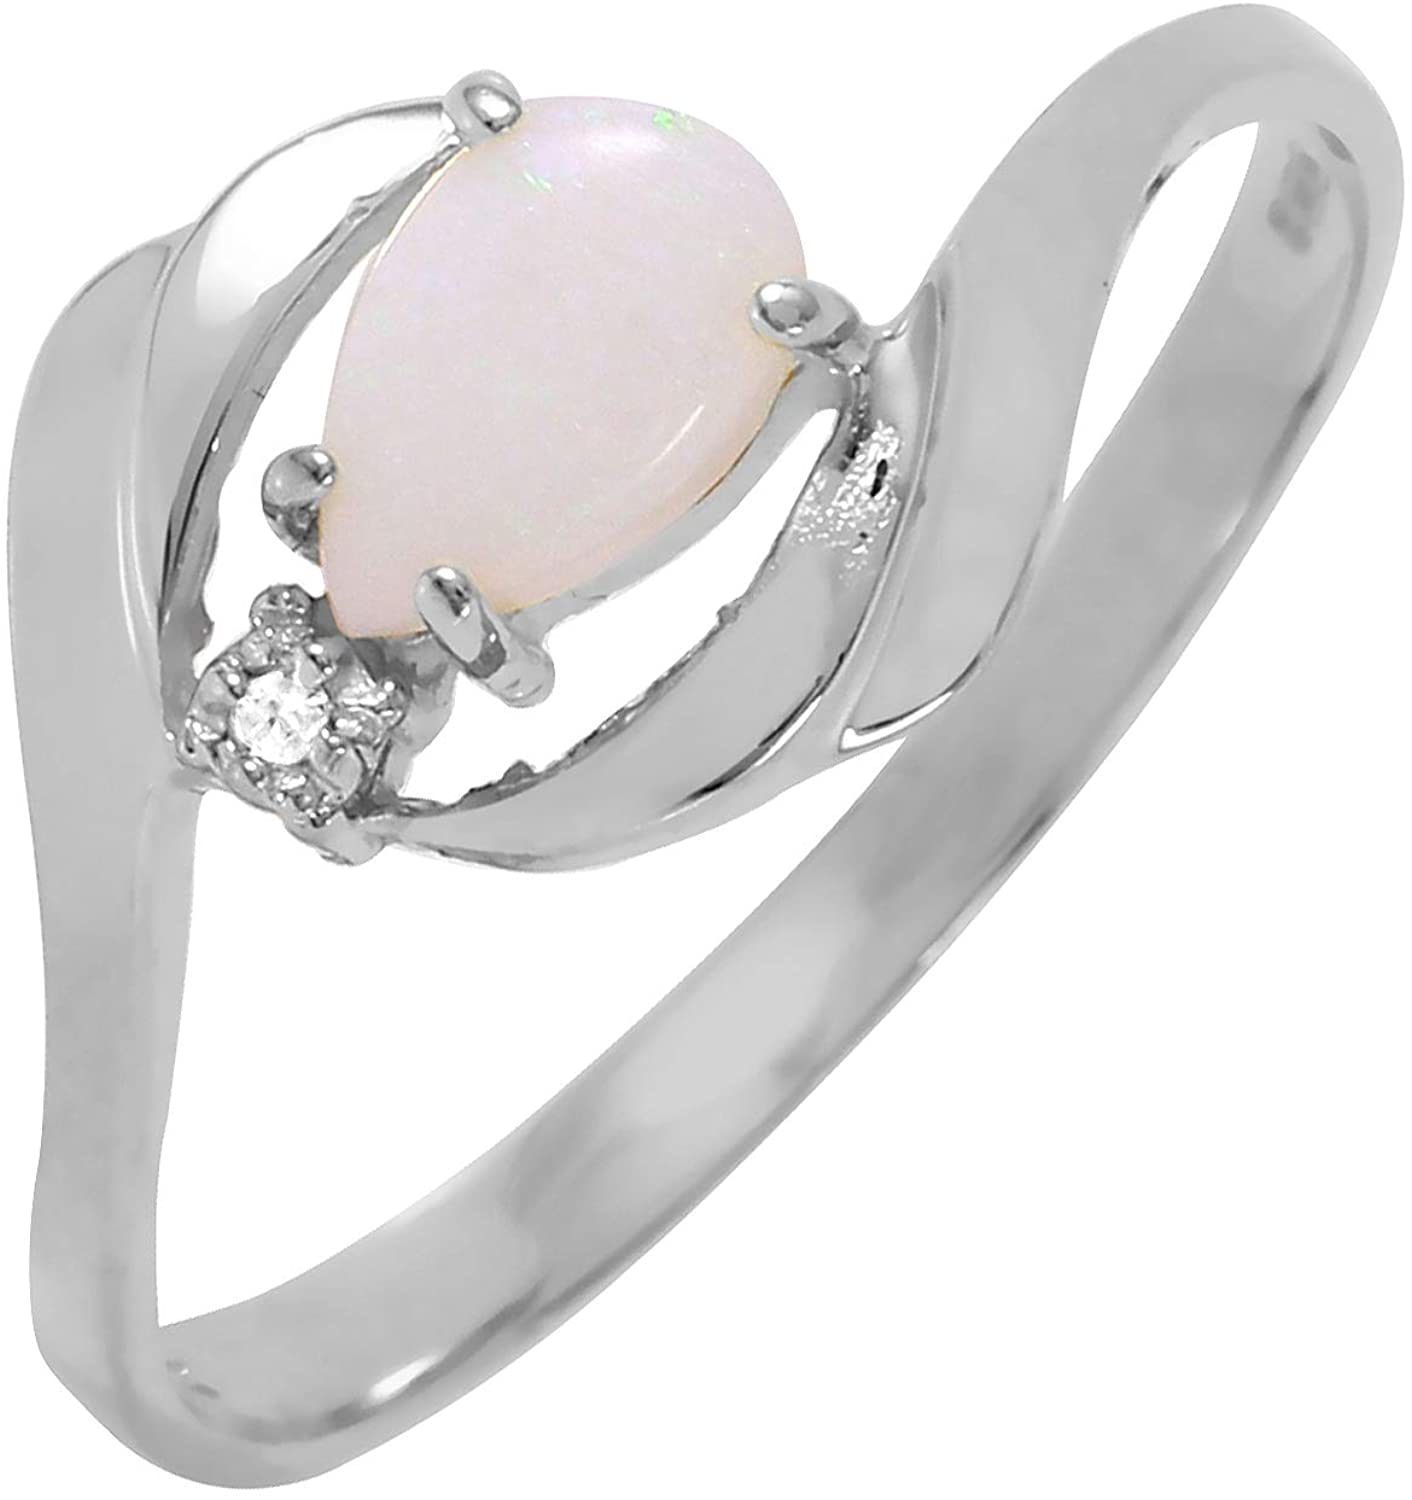 Galaxy Gold 0.26 Carat 14k Solid White Gold Ring with Natural Diamond and Pear-Shaped Opal - Size 7